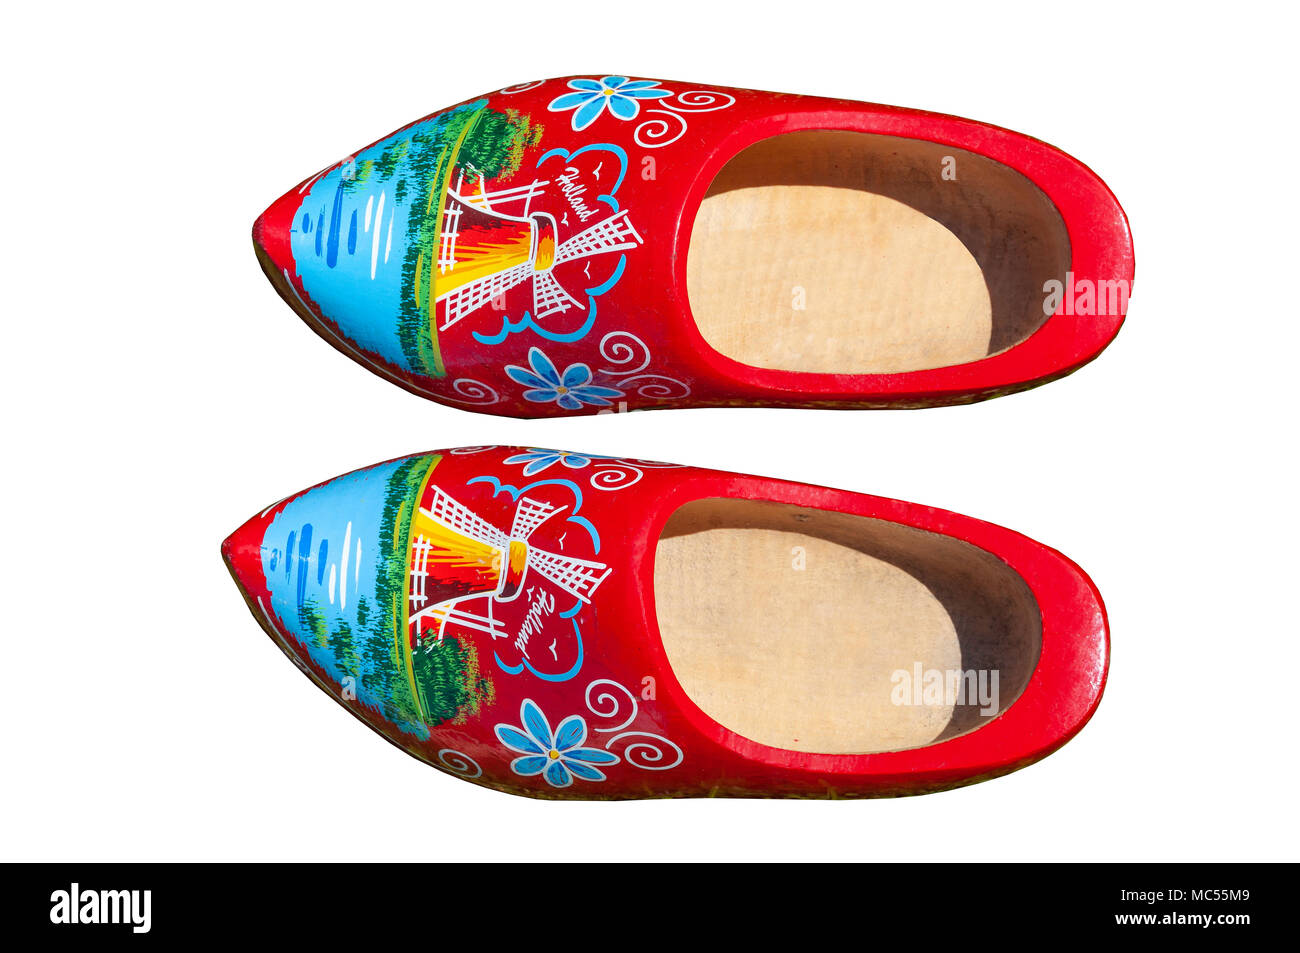 Traditional wooden clogs (Klomp), Kinderdijk, Nieuw-Lekkerland Municipality, Zuid Holland, Netherlands - Stock Image